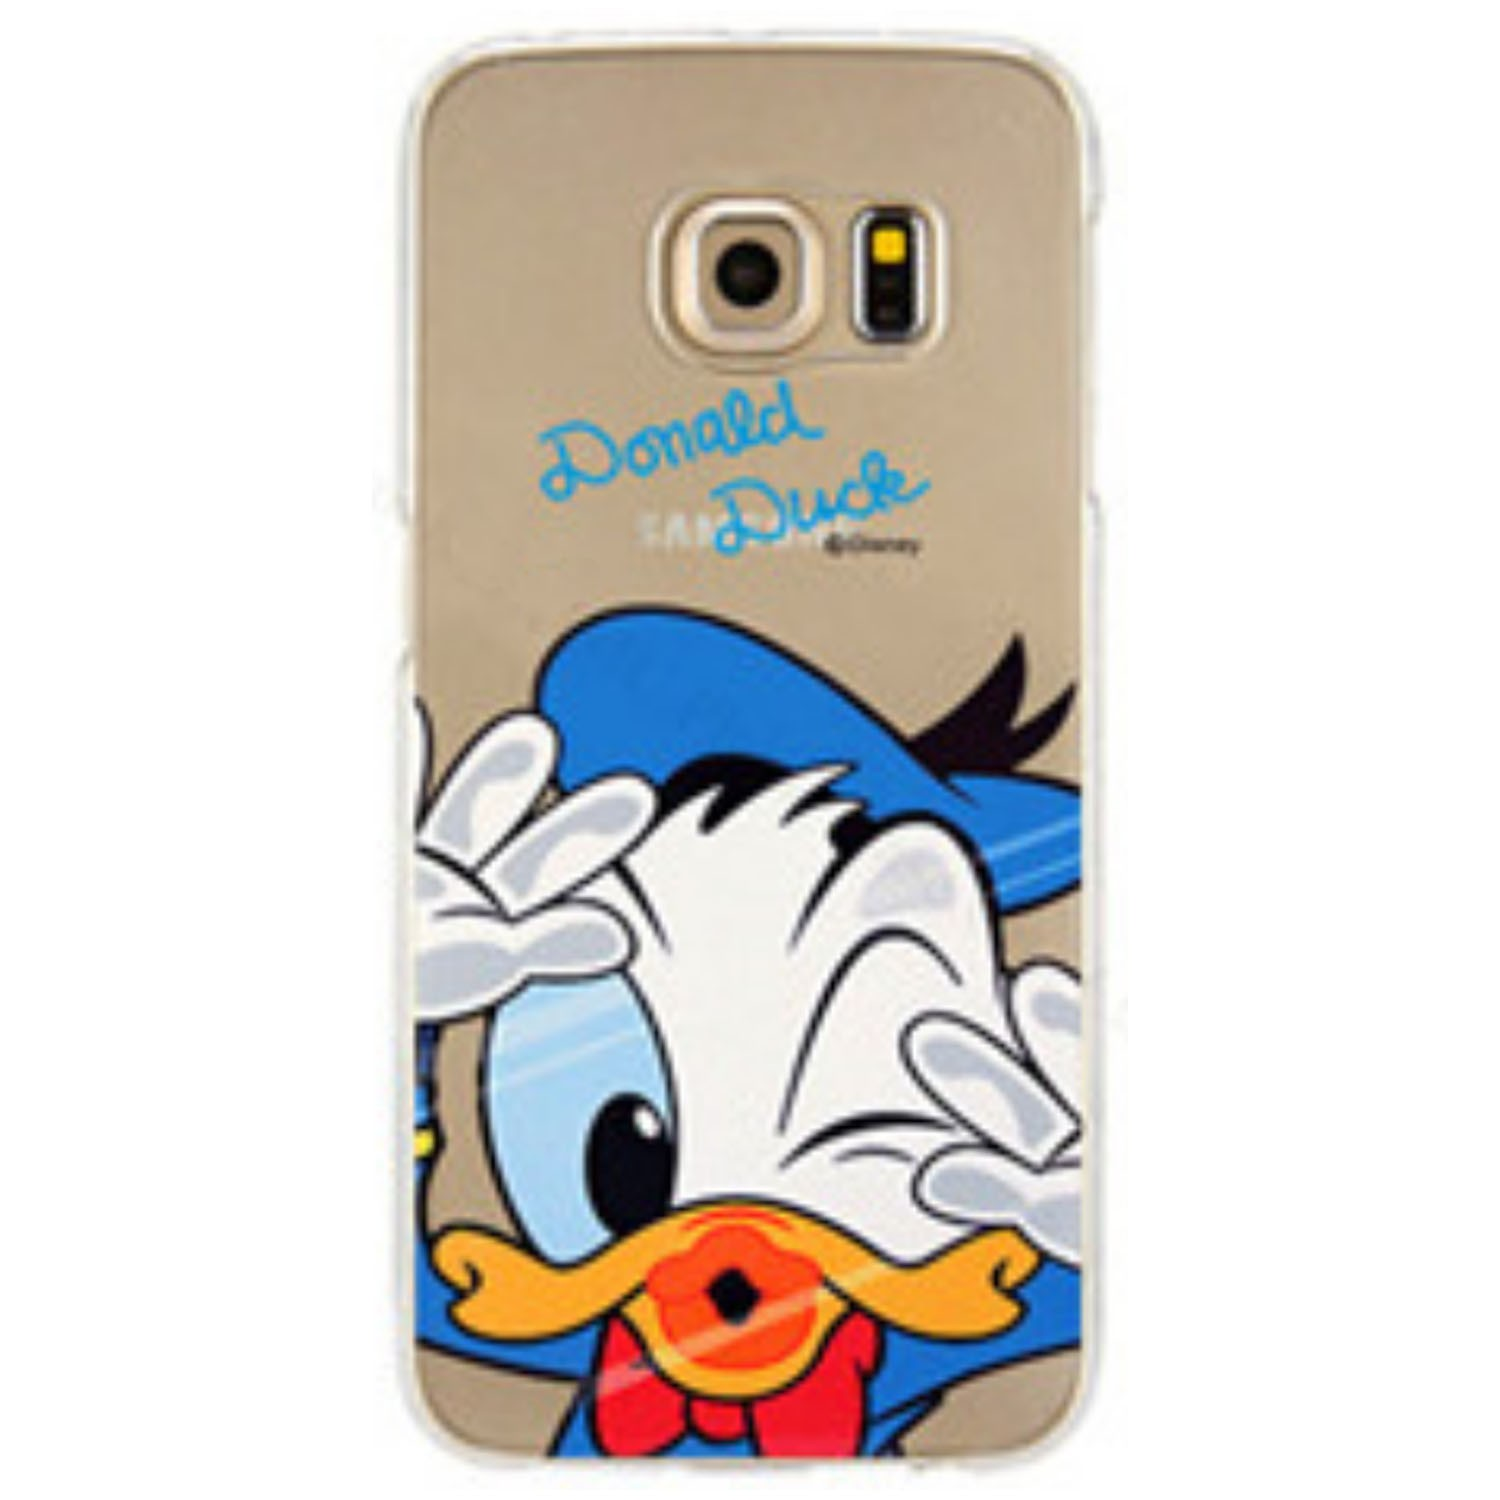 Kritzel Case Collection Galaxy S6 Edge - Donald Duck